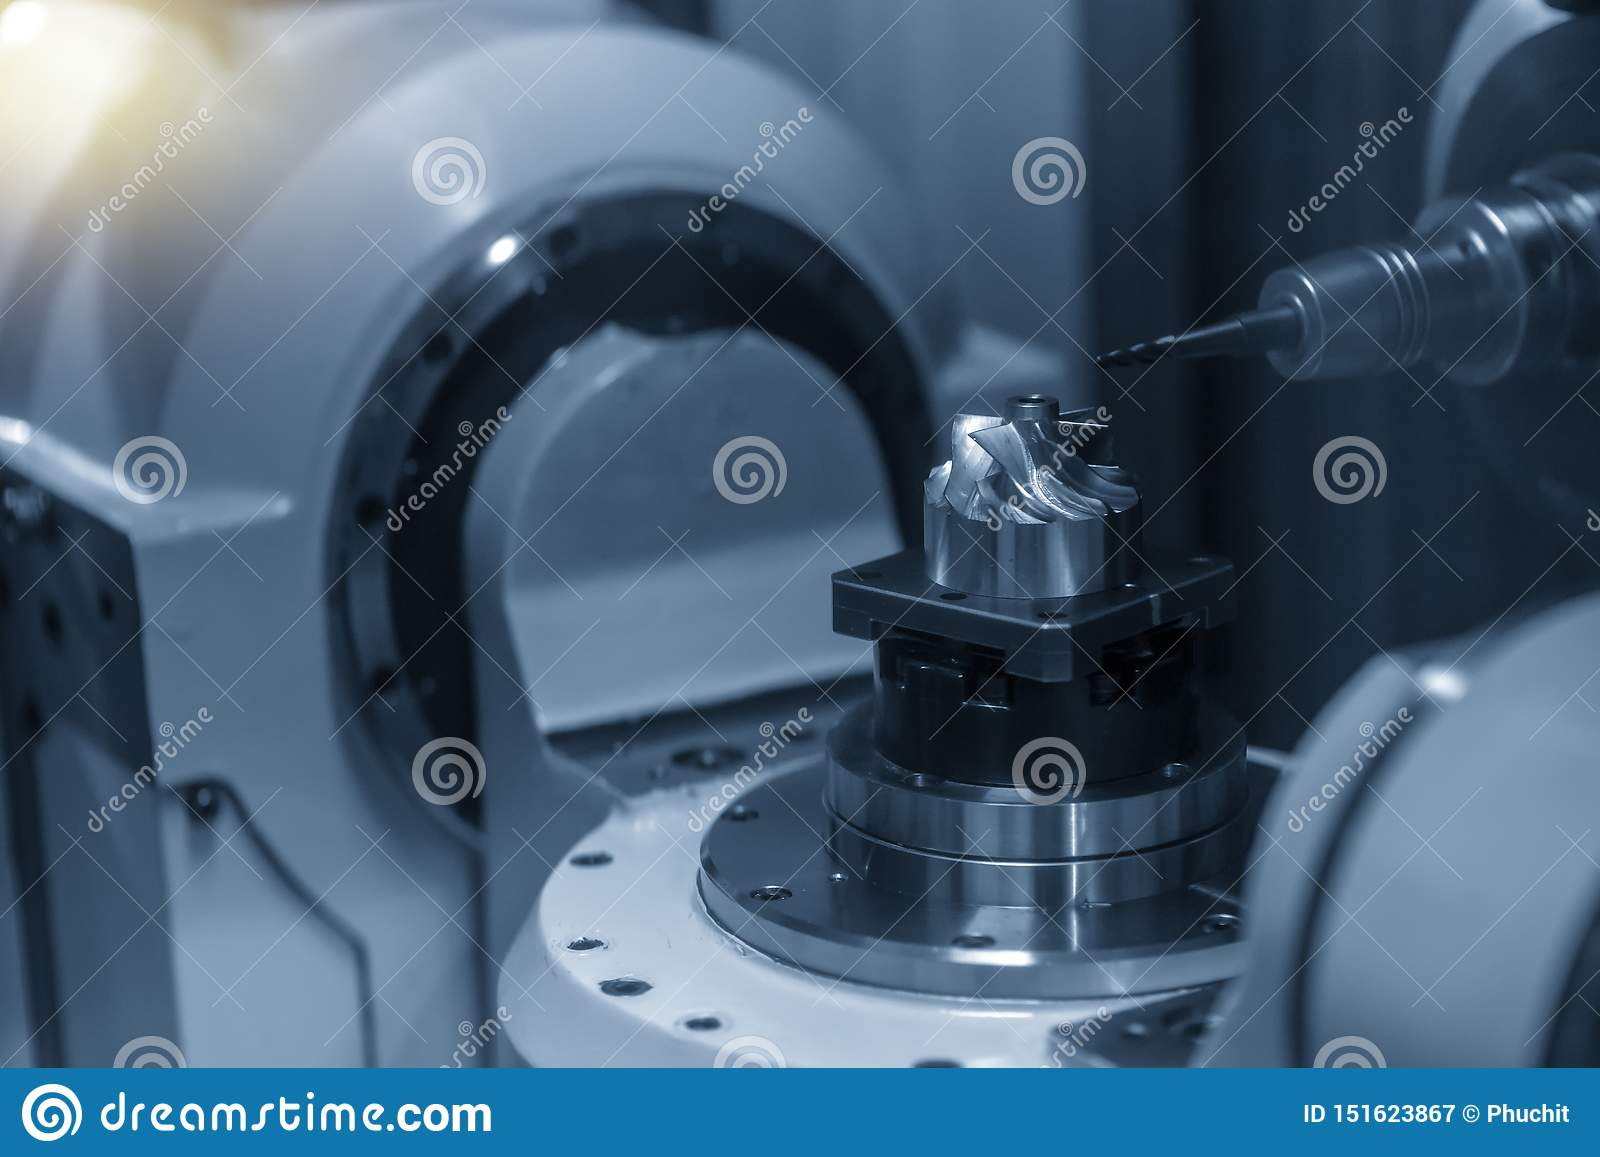 The 5 Axis CNC Milling Machine Cutting The Turbine Blade